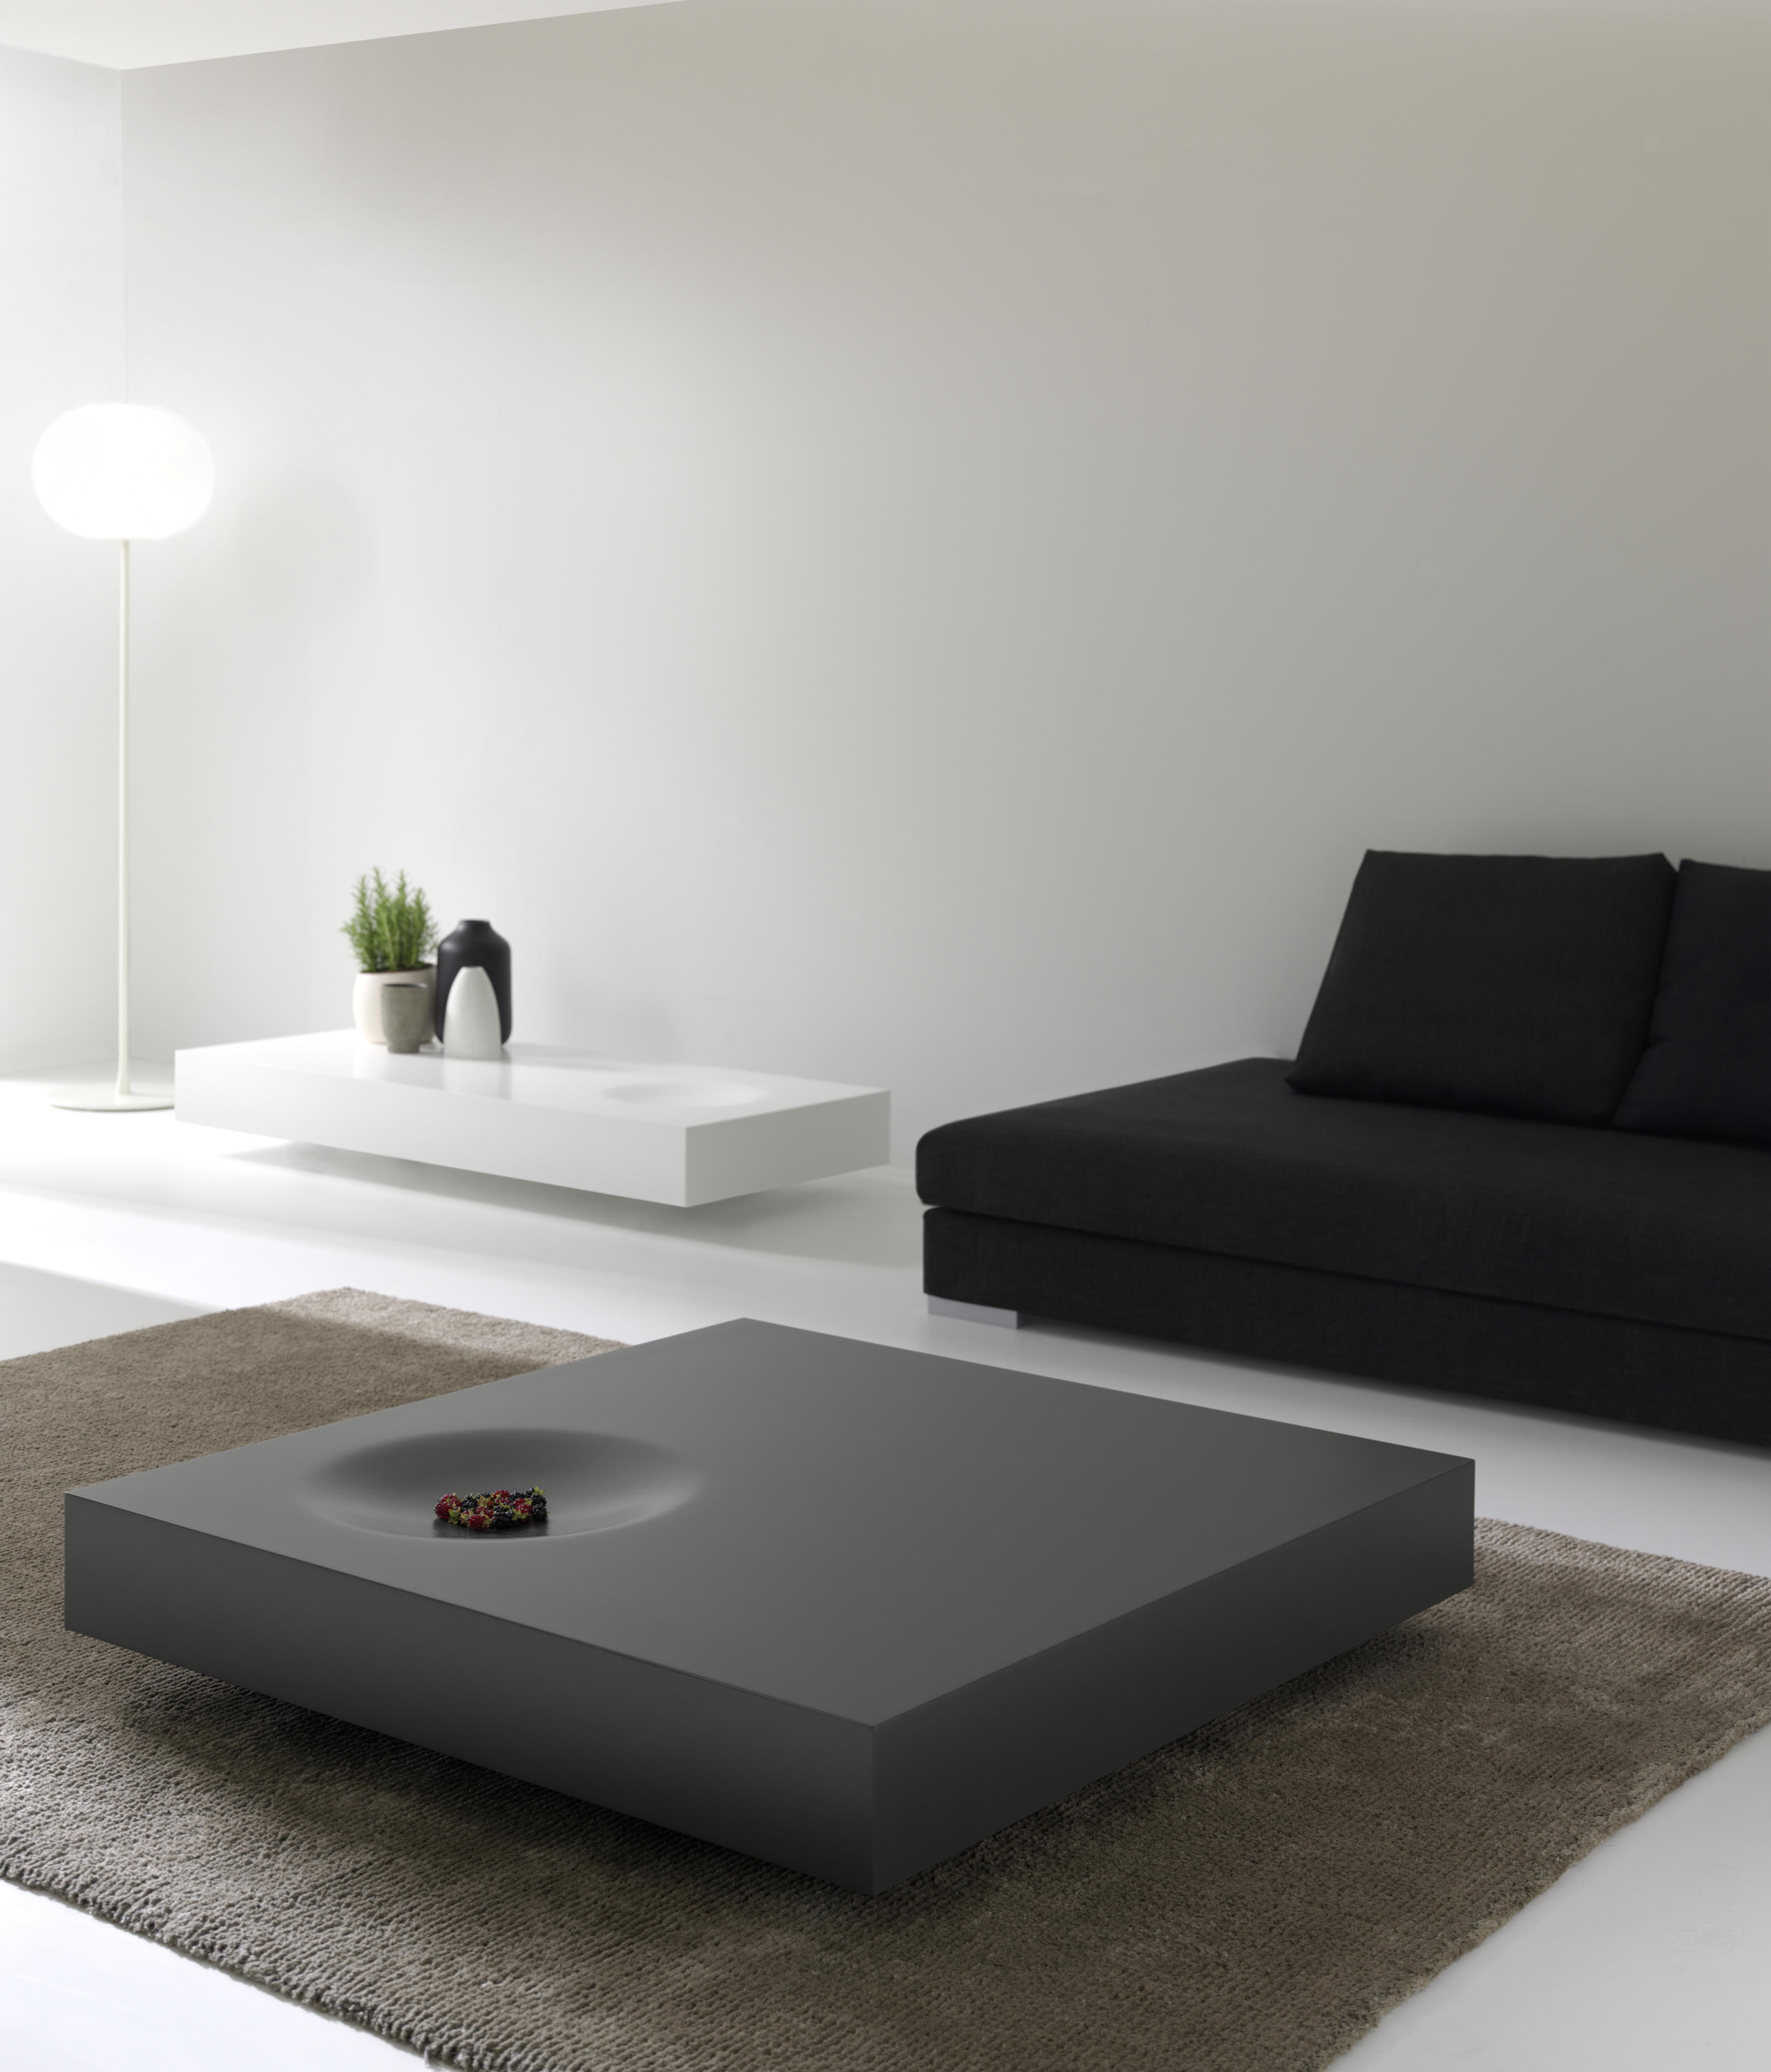 49 Best Coffee Tables Images On Pinterest: Coffee Tables From Kendo Mobiliario